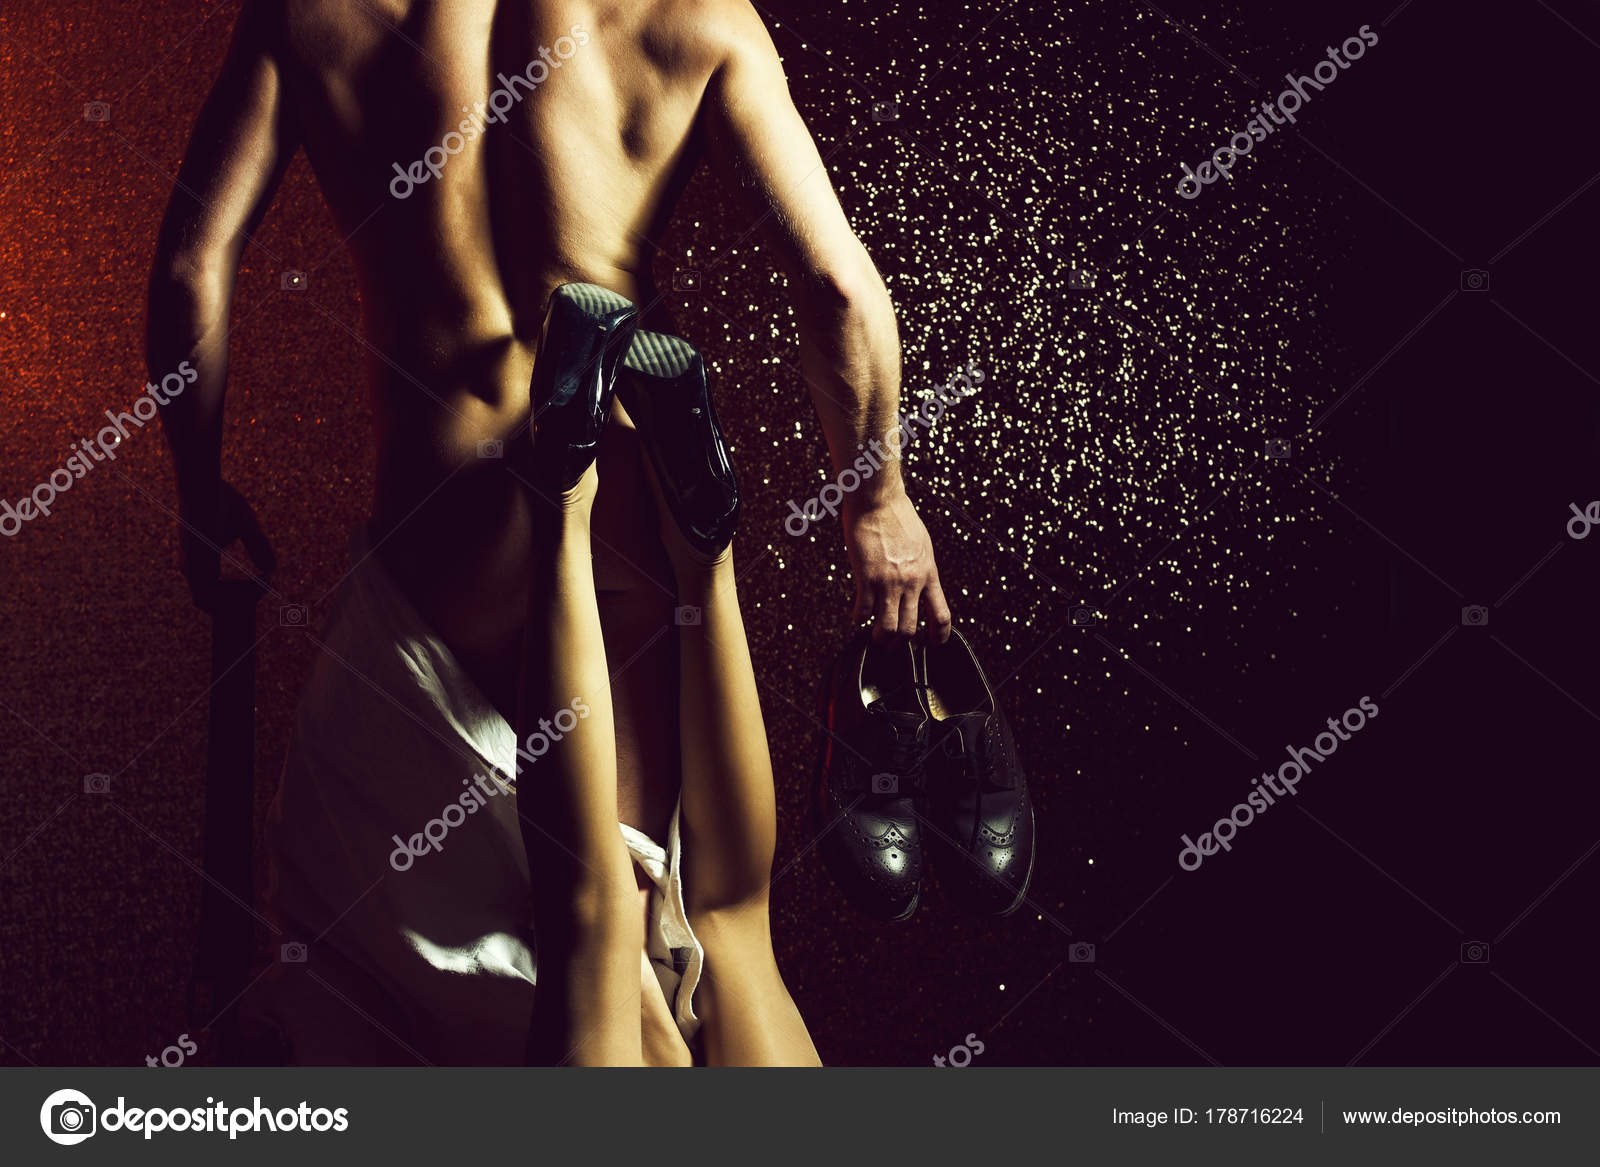 Muscl guy around sexy girls holding them Muscular Man With Sexy Woman Holding Fashionable Leather Shoes Stock Photo By C Tverdohlib Com 178716224